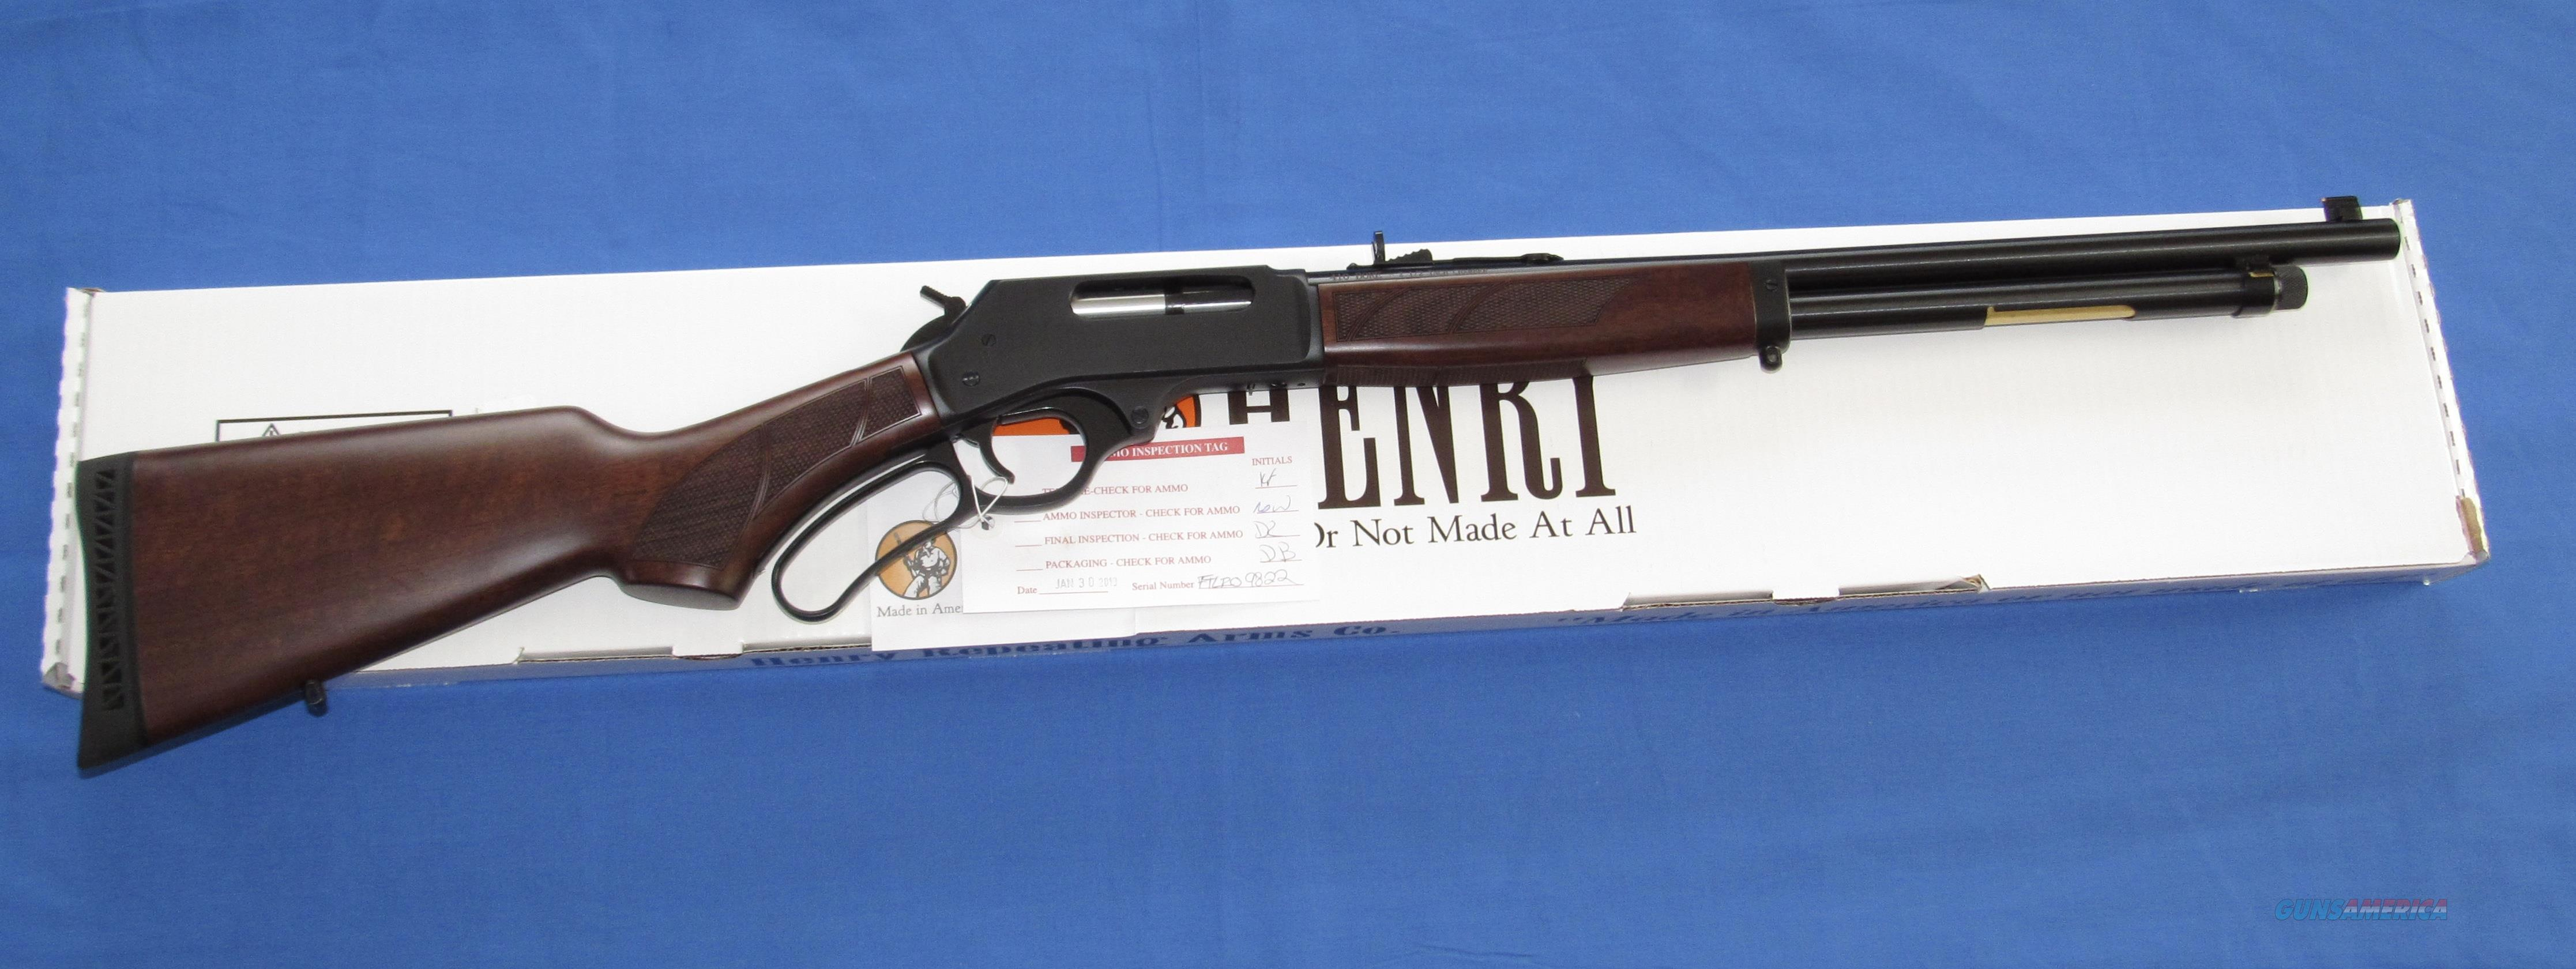 HENRY 410 GAUGE LEVER ACTION SHOTGUN  Guns > Shotguns > Henry Shotguns